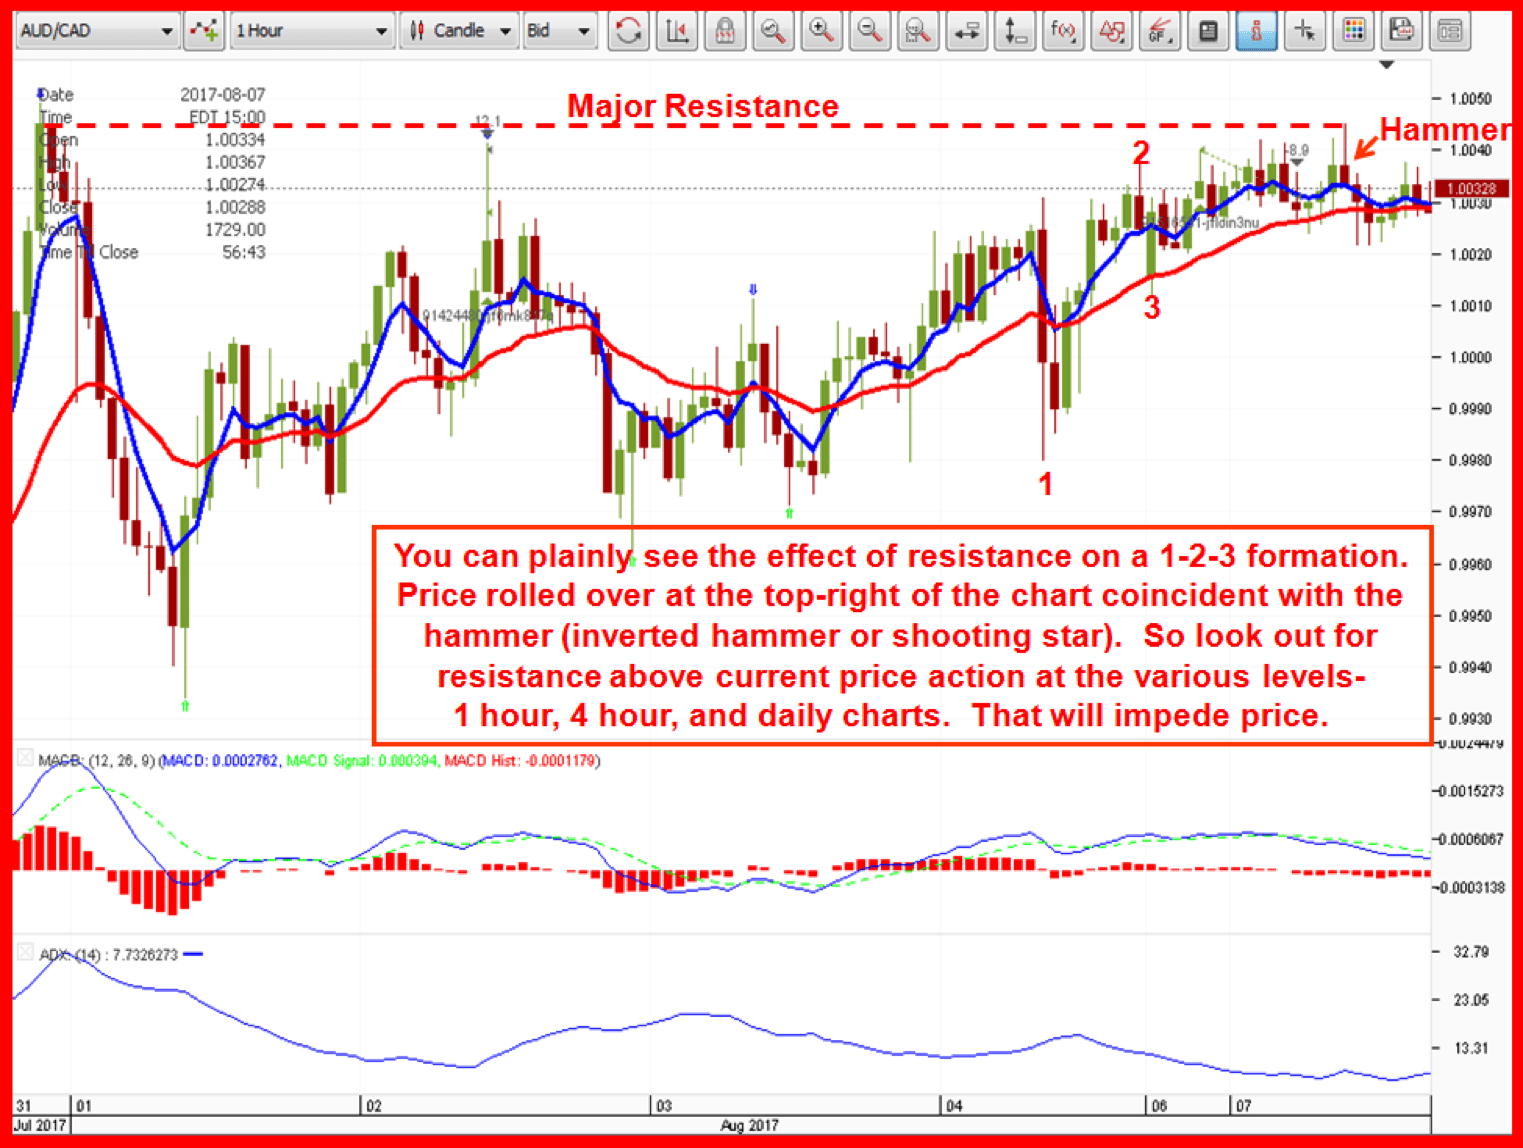 AUDCAD chart showing major resistance on 1 hr. chart impeding price advance.